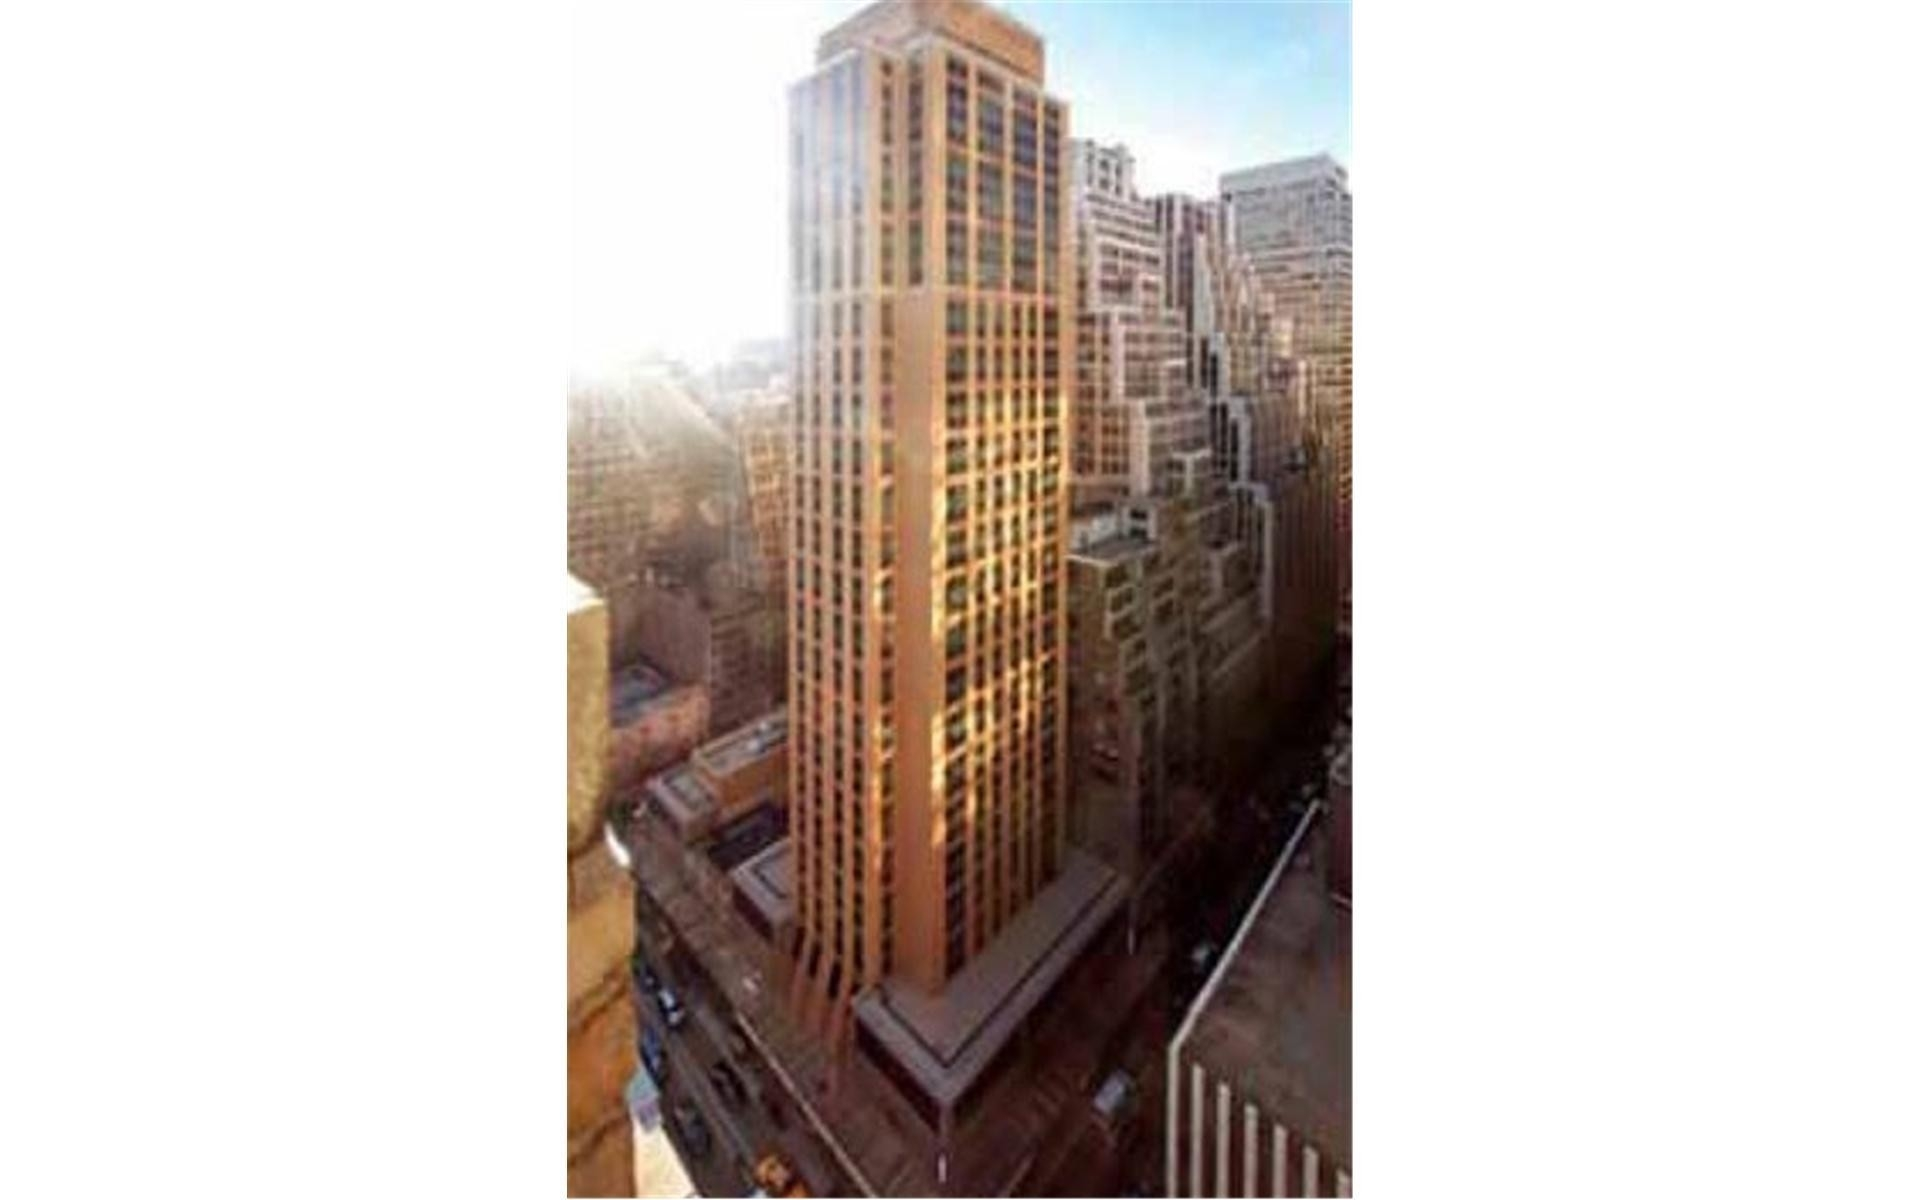 1. Bryant Park Tower edificio en 100 West 39th St, Garment District, New York, NY